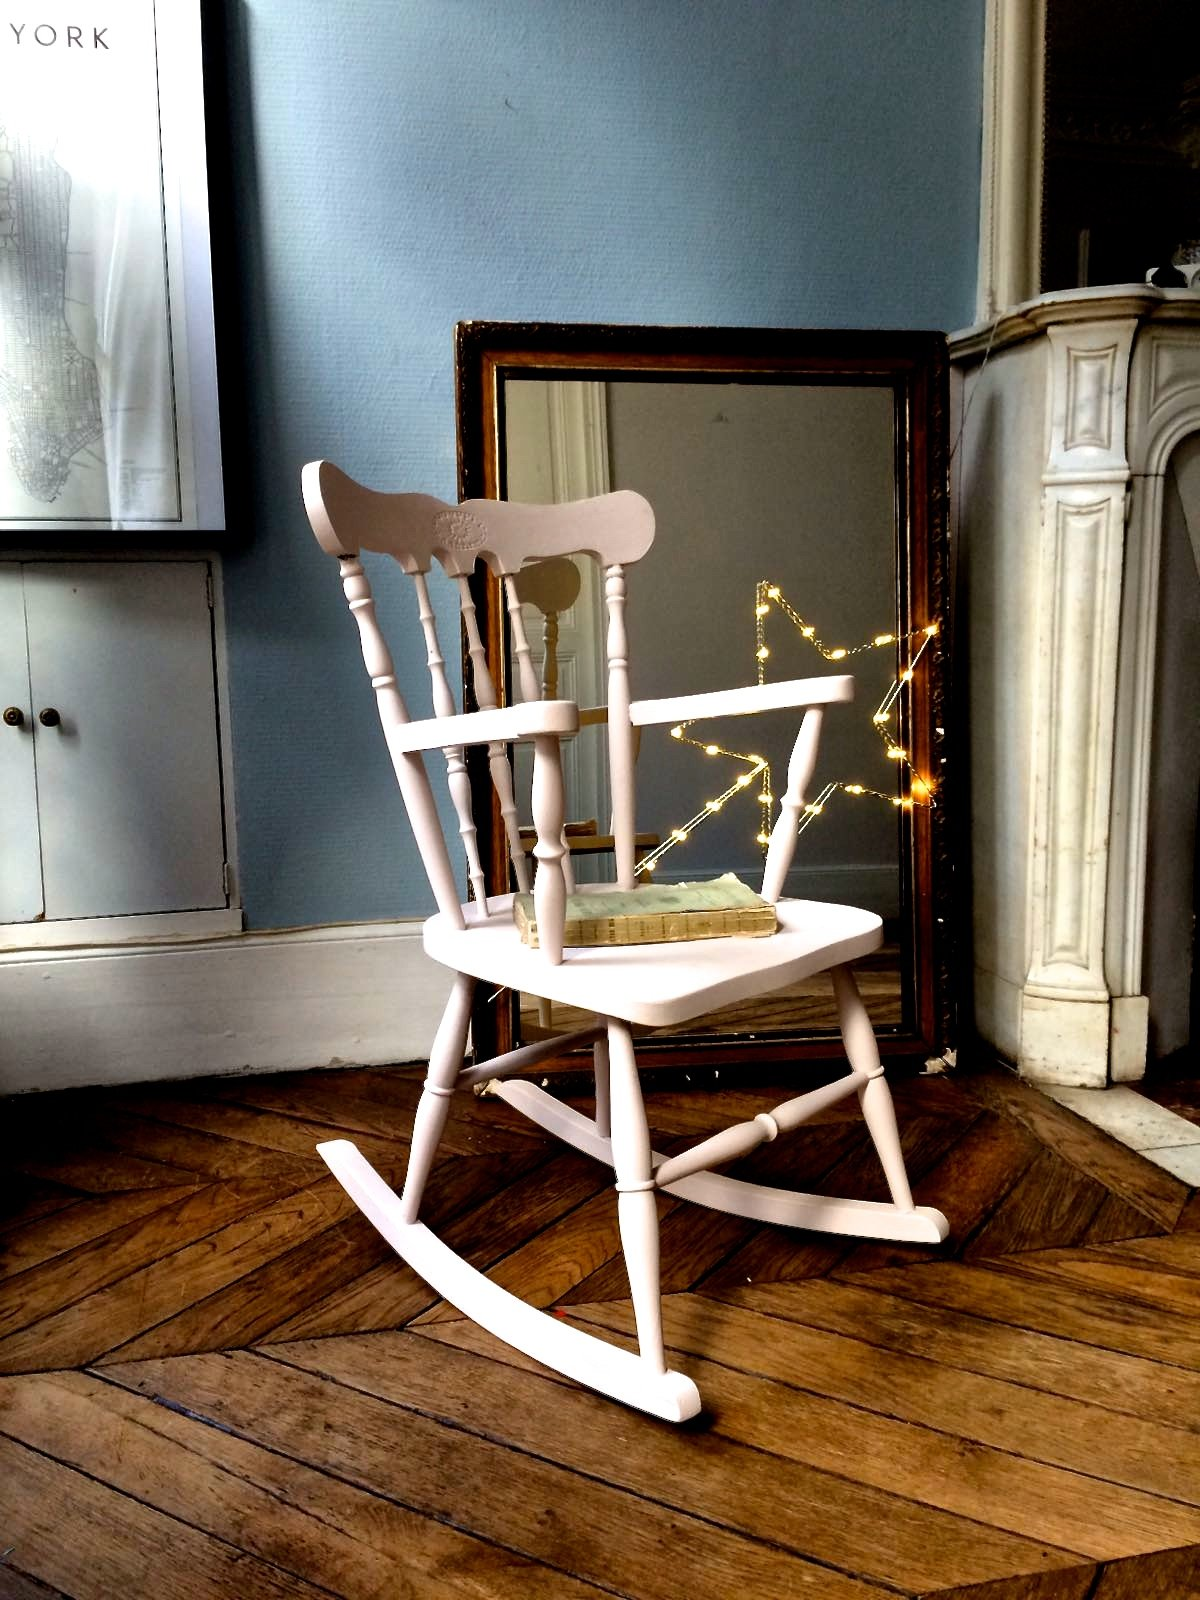 Rocking-chair enfant - Louise